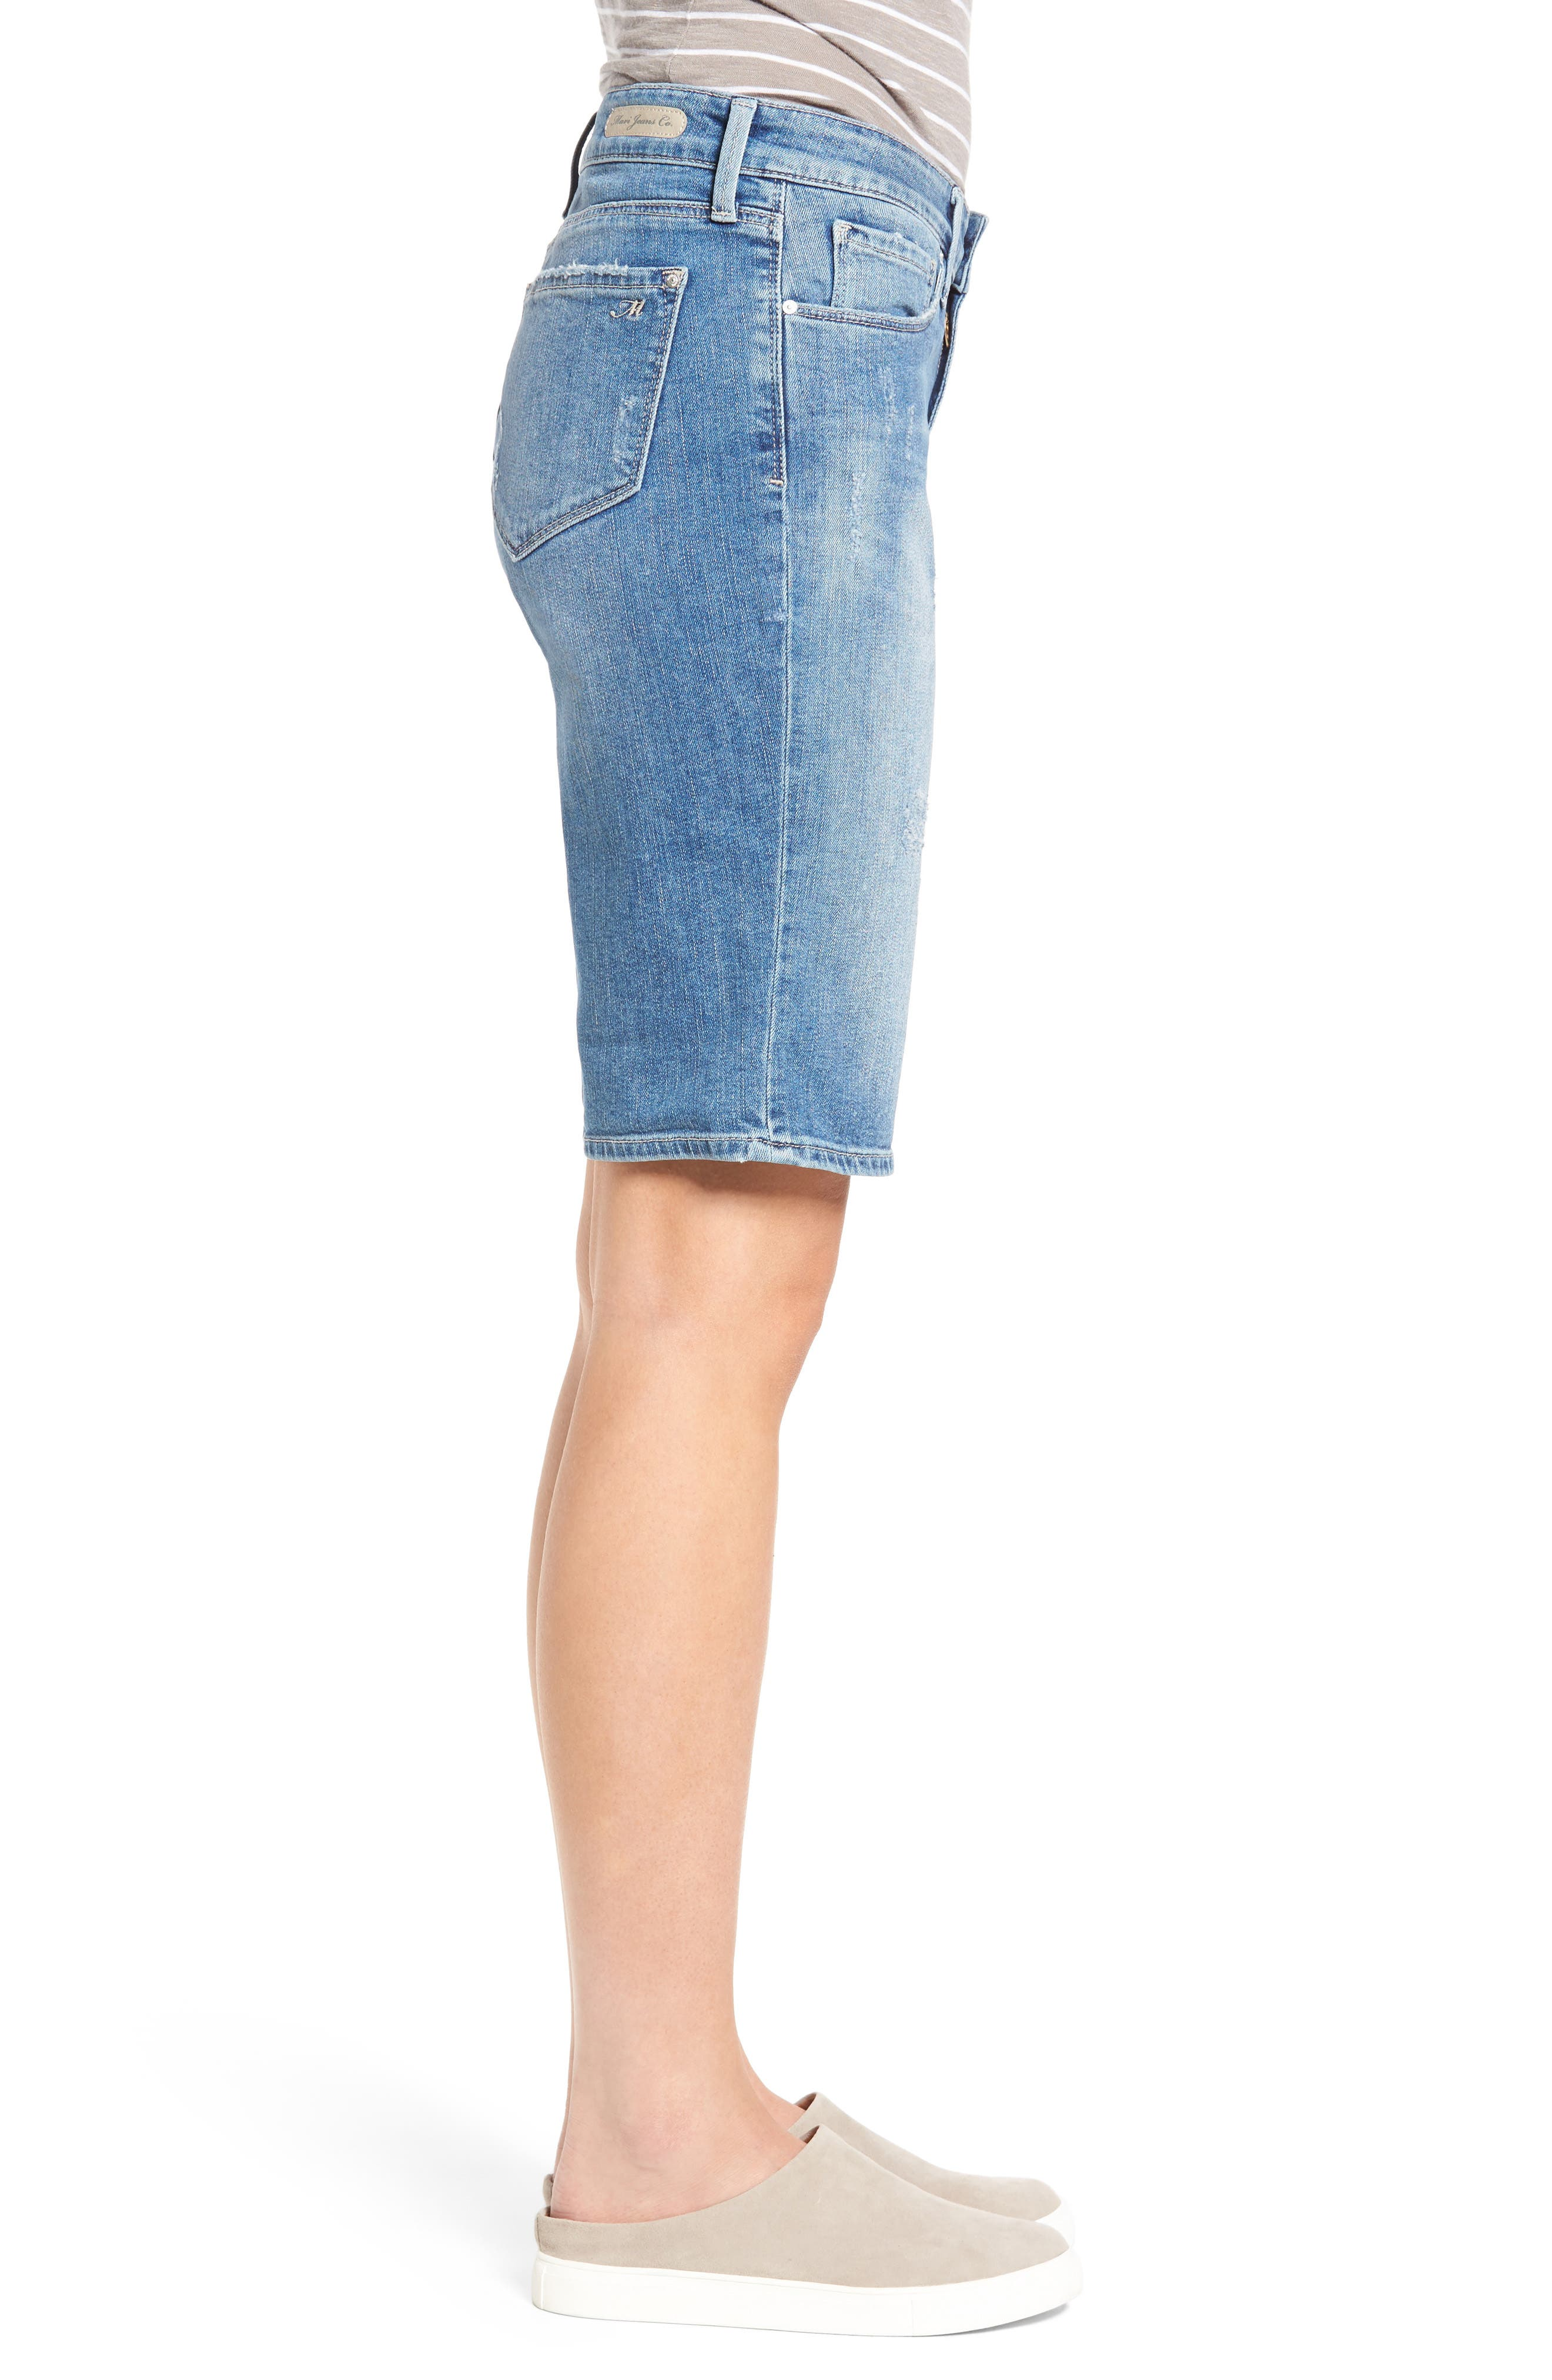 Alexis Ripped Denim Shorts,                             Alternate thumbnail 3, color,                             Mid Ripped